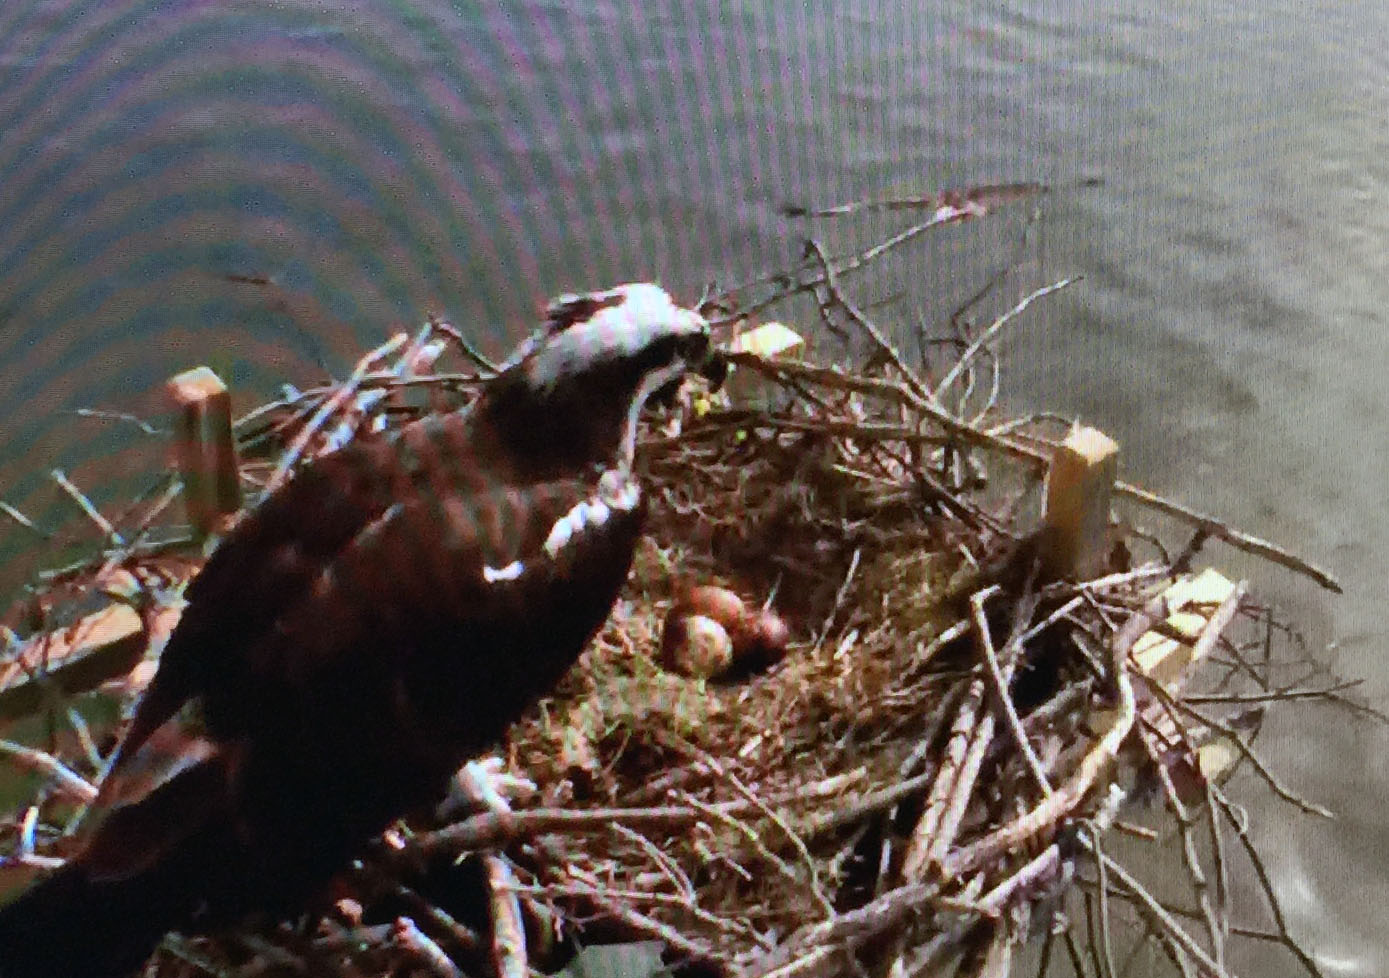 Chesapeake Bay's health reflected in live cams as birds of prey bounce back